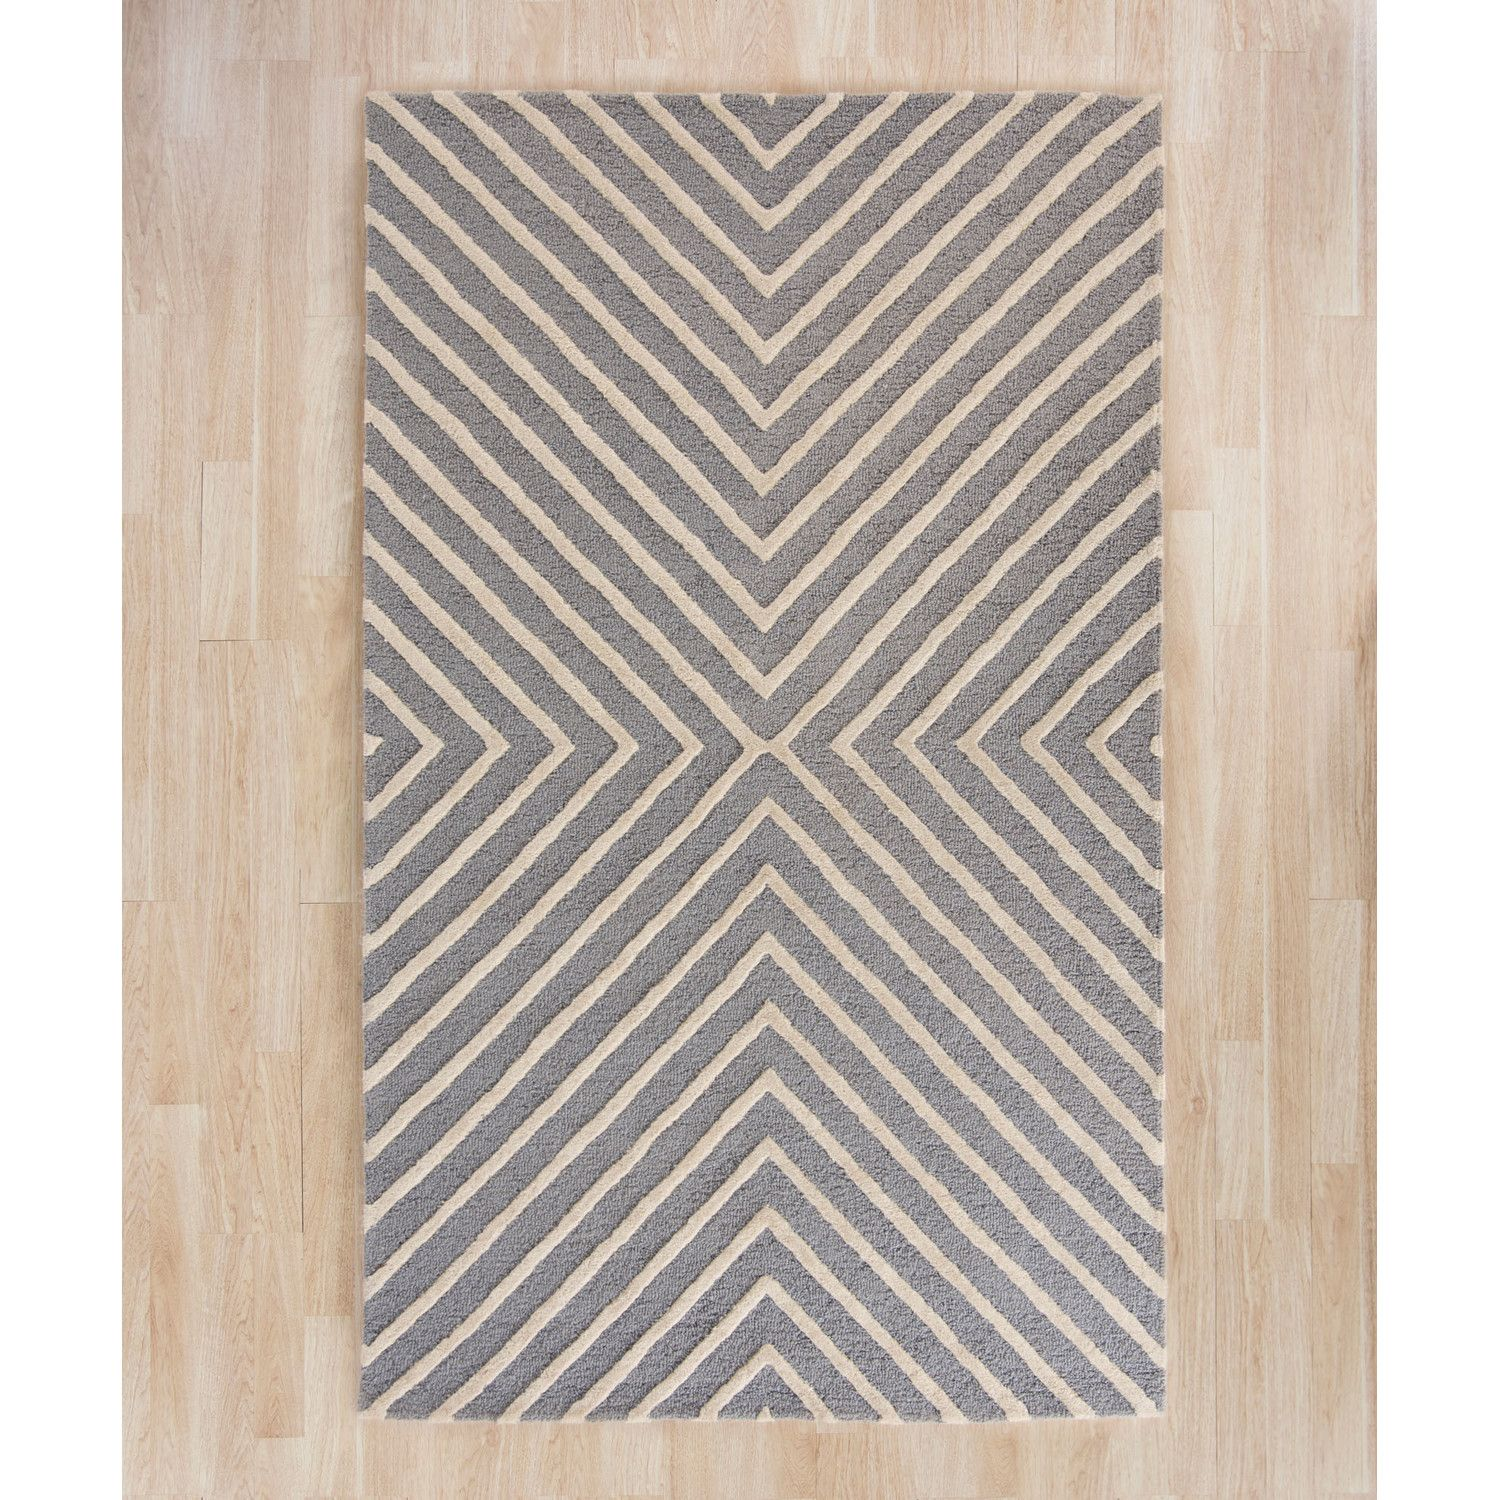 silver rug ivory rugs pin great shop wayfair deals langley paloma on street all for area